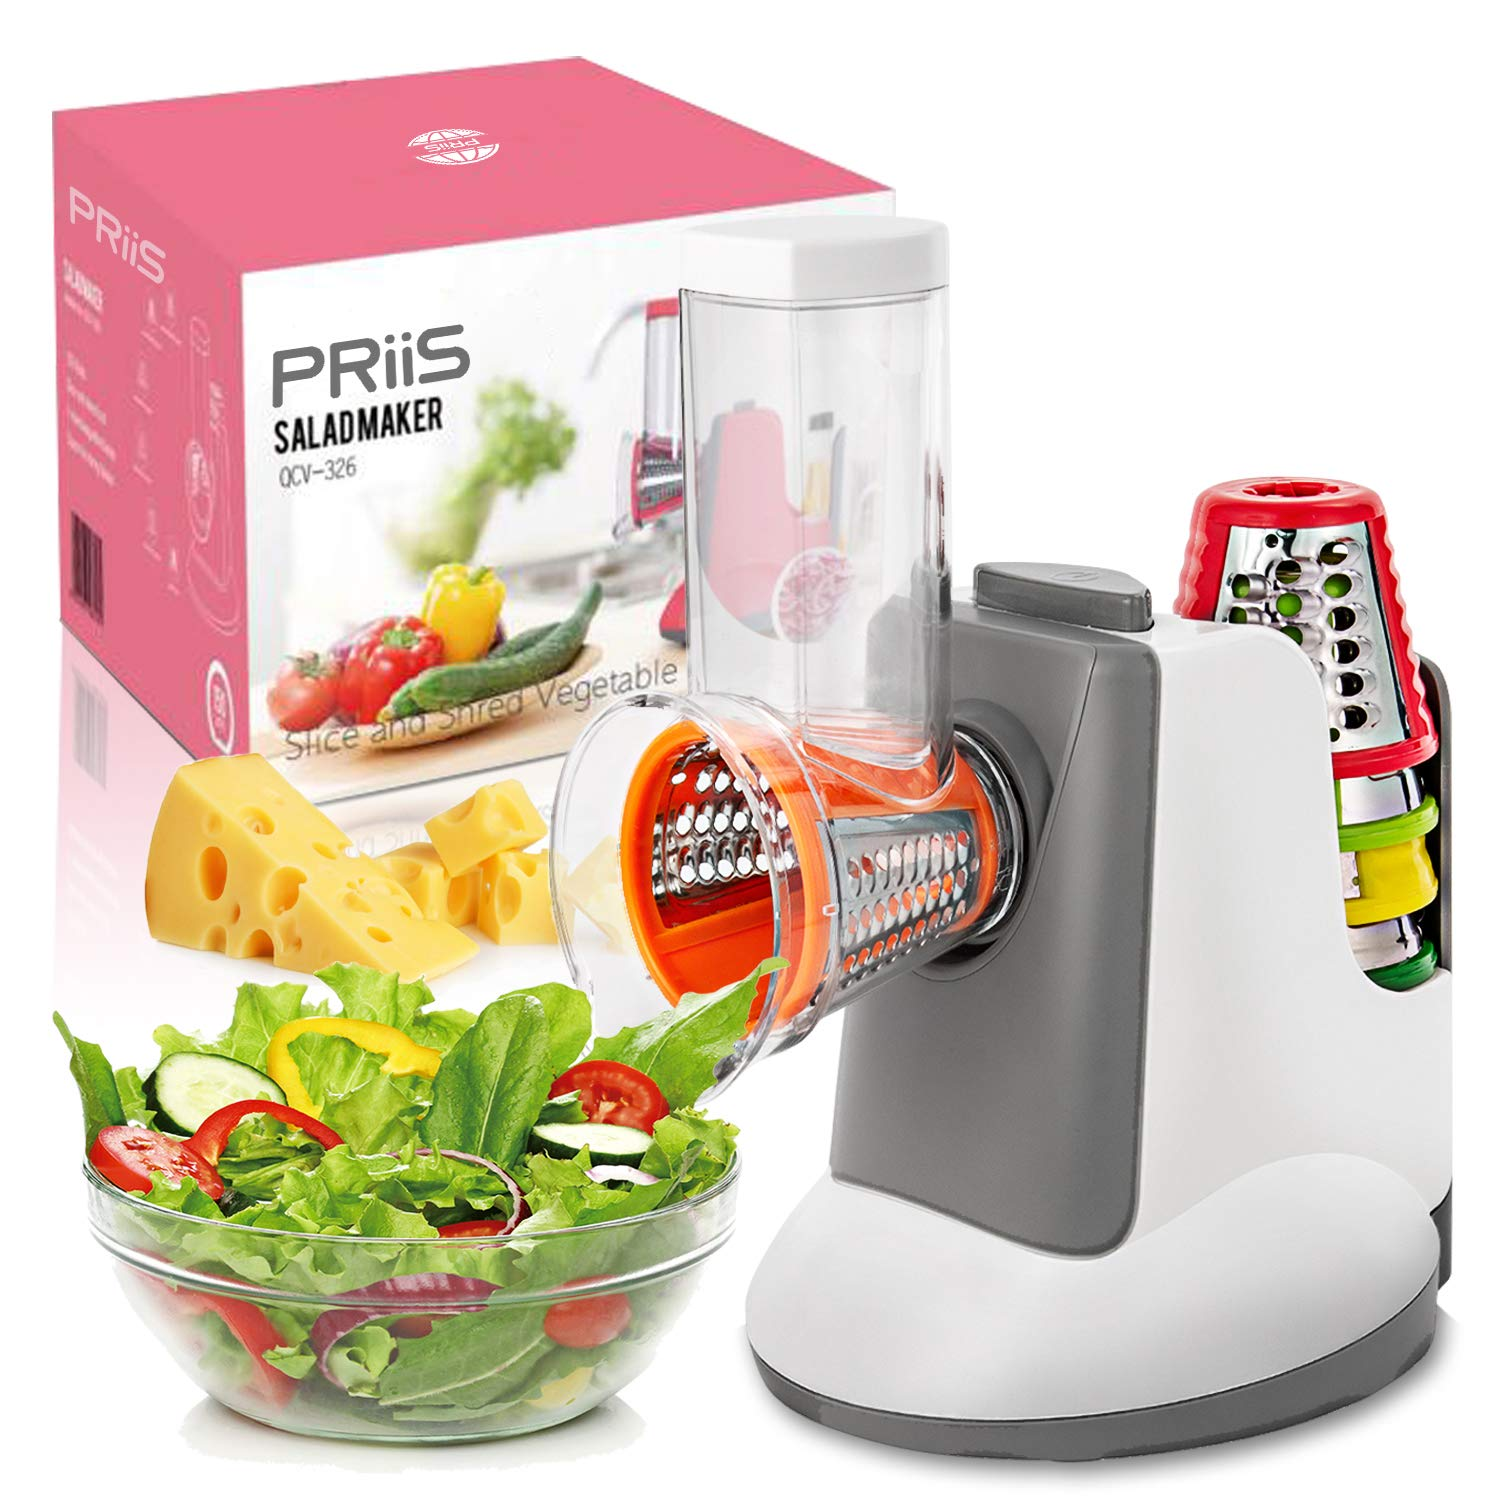 PRiiS Salad Shooter Electric Slicer Food Processor Salad Machine Carrot Cheese Nut Grater Rotary Shredder, One-Touch Control & 5 Free Stainless Steel Cones Blades, Fitness Molding Fat loss (Grey) by PRIIS